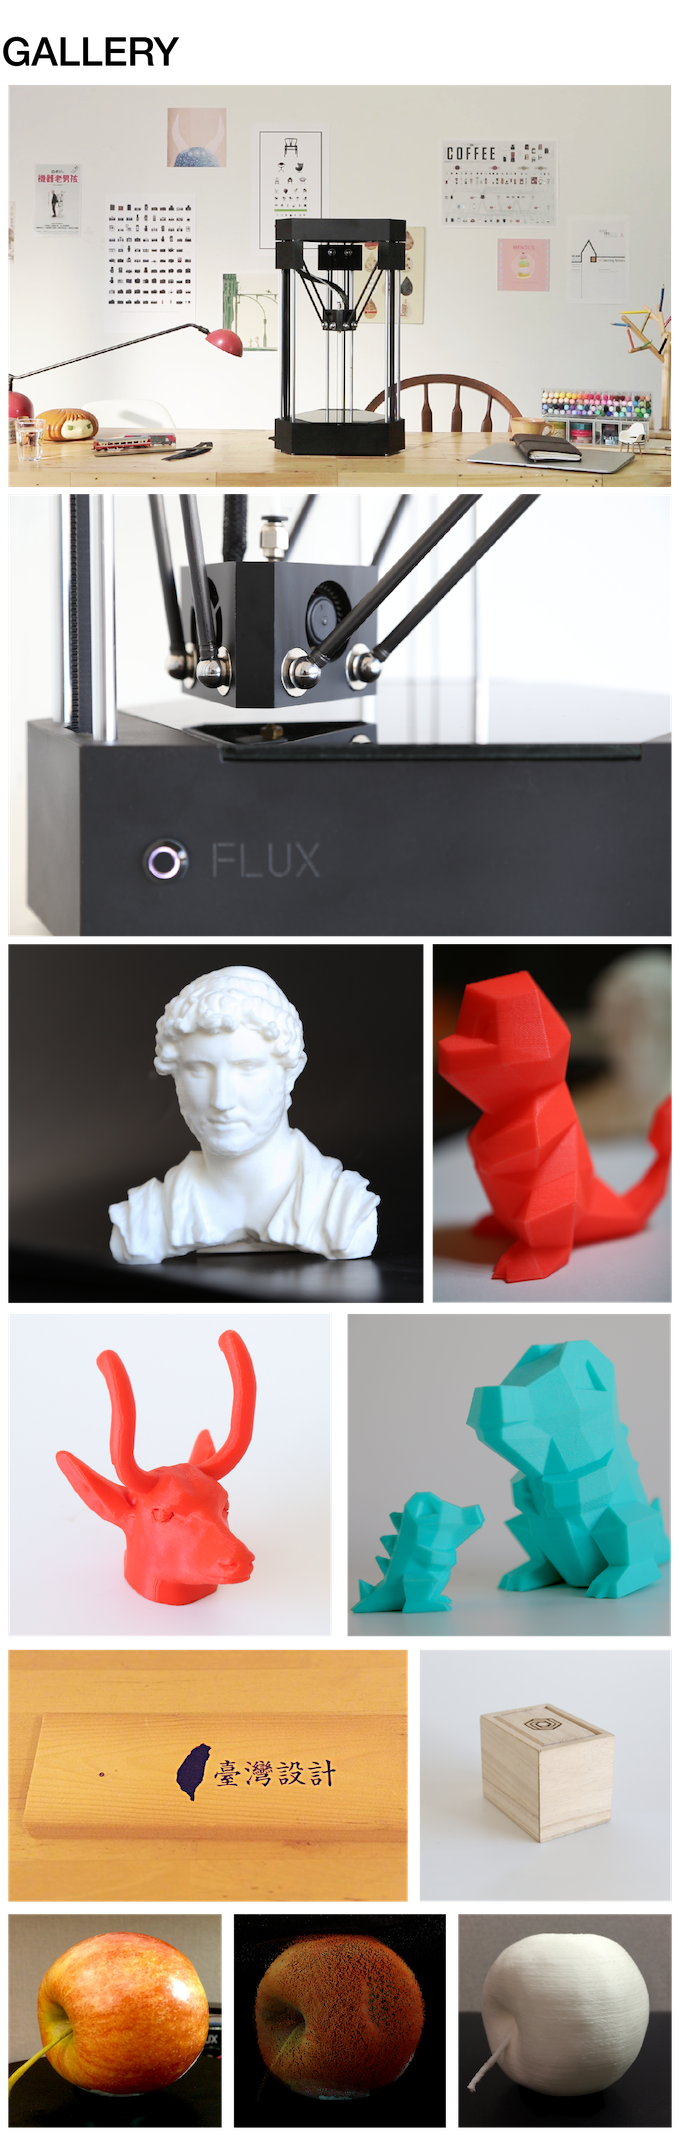 FLUX All-in-One 3D Printer - UNLIMITED  ELEGANT  SIMPLE  by